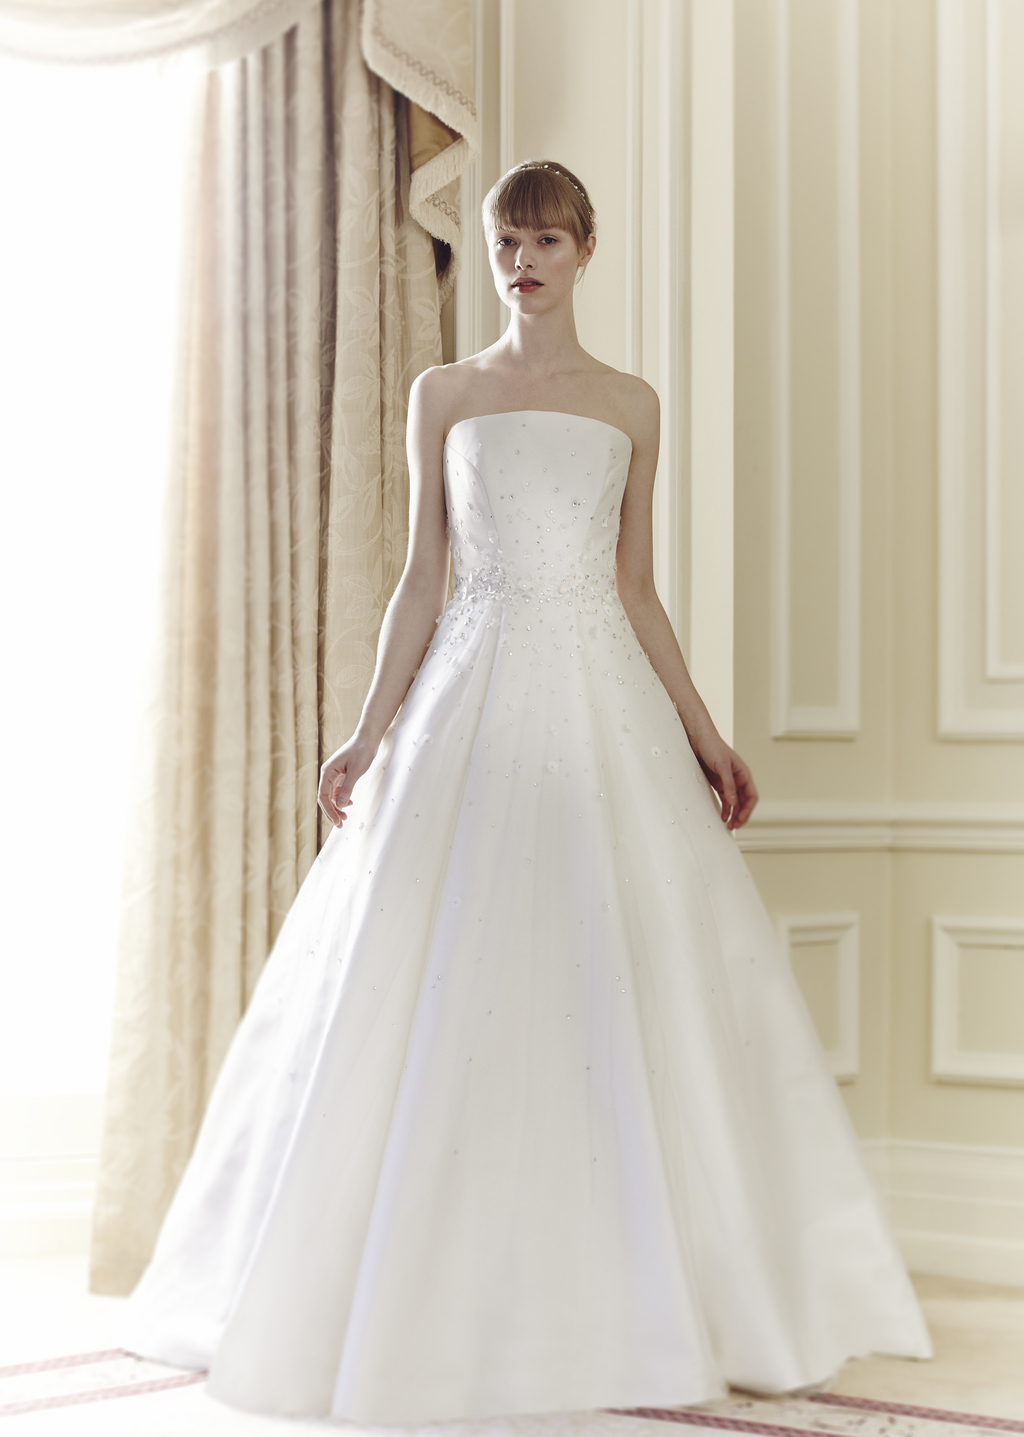 Jenny-packham-bridal-collection-spring-summer-2014-wedding-dress-minnie.full